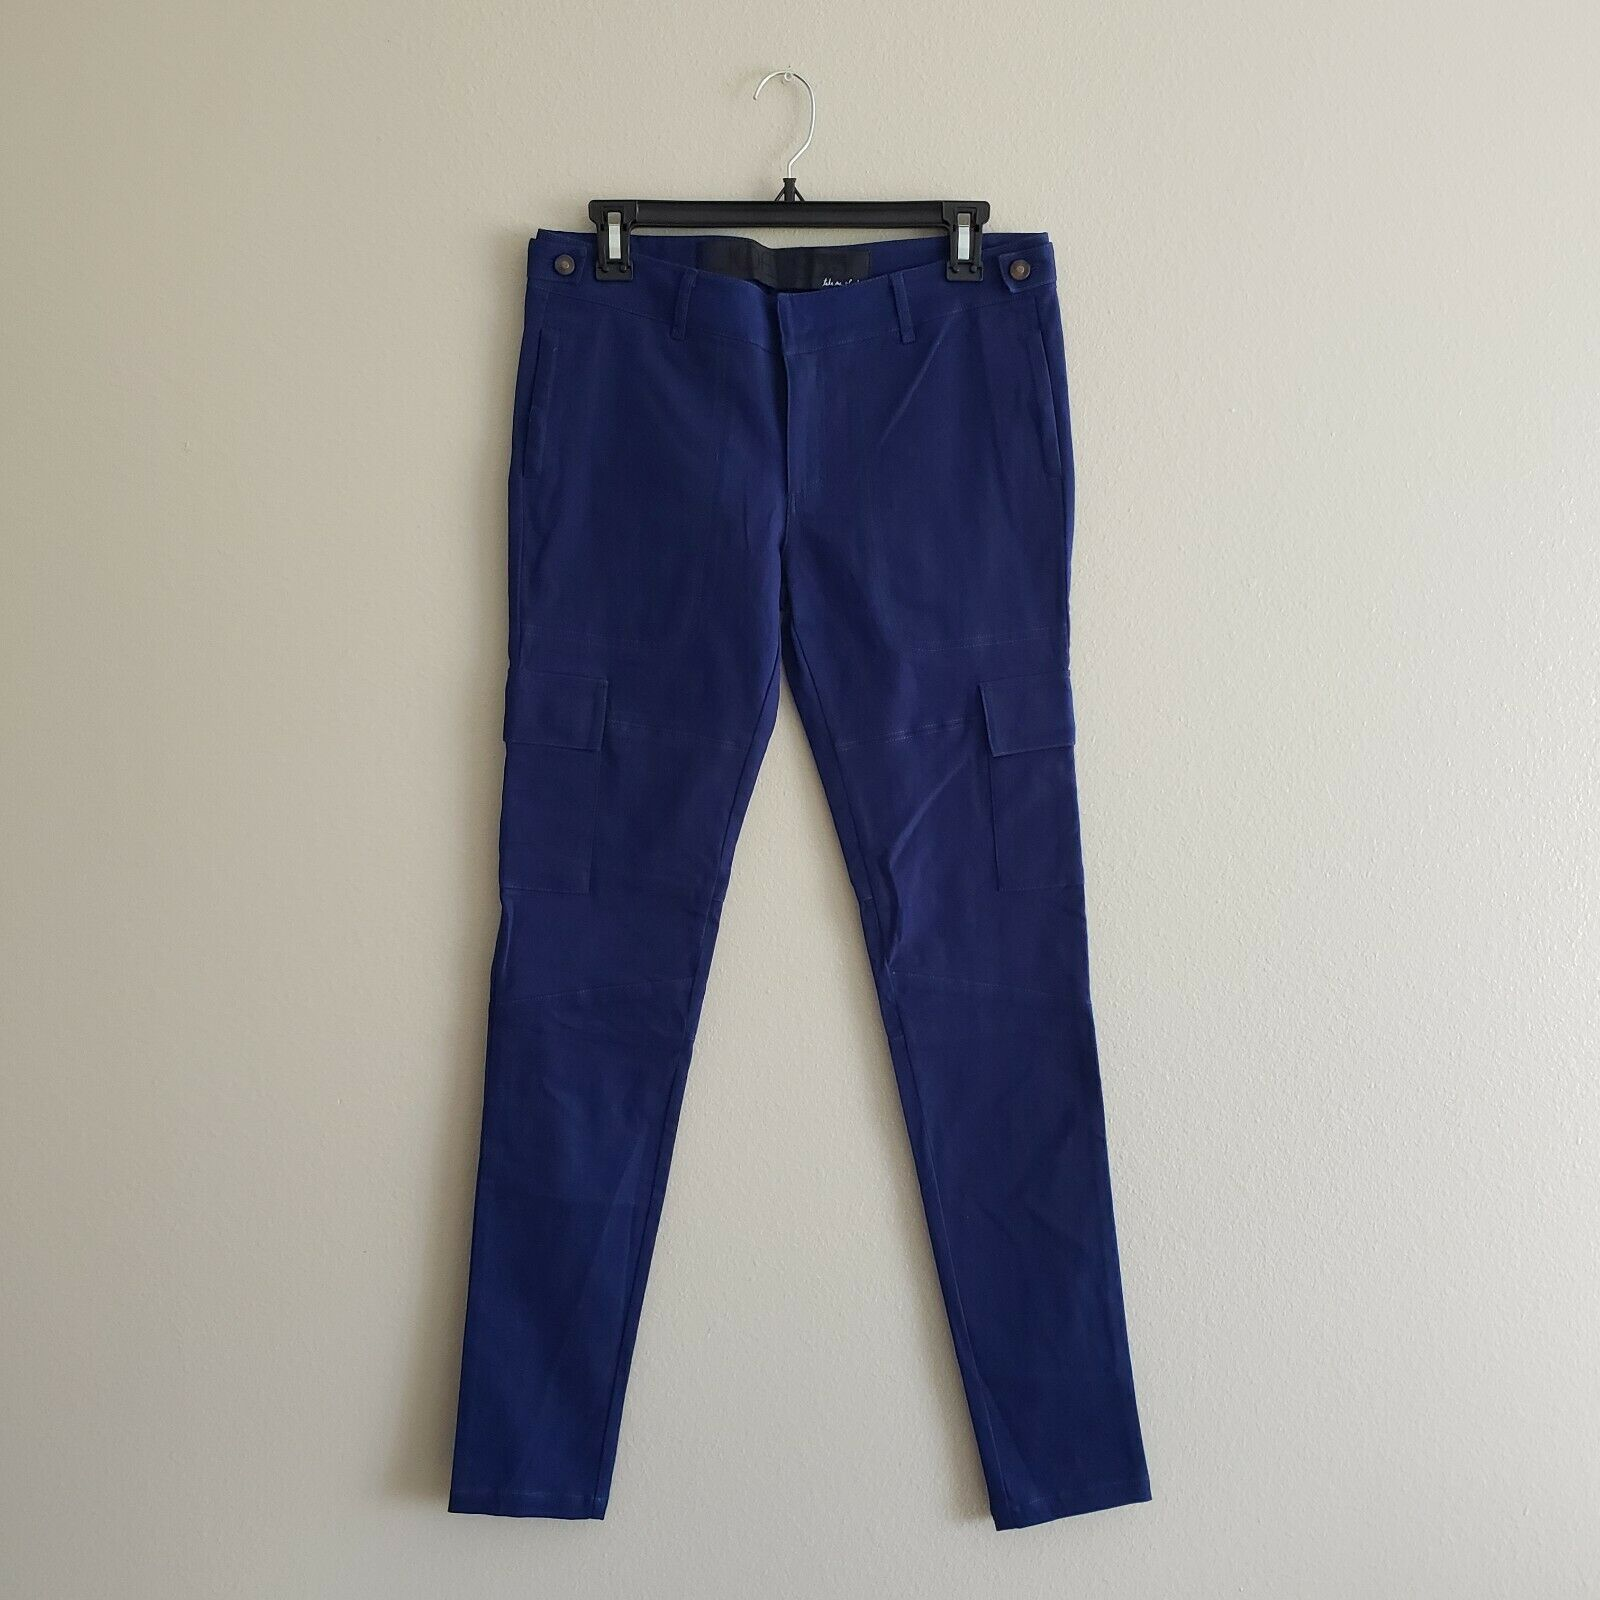 Joes Jeans Womens bluee Leto Skinny Military Jeans Size 27 NWT